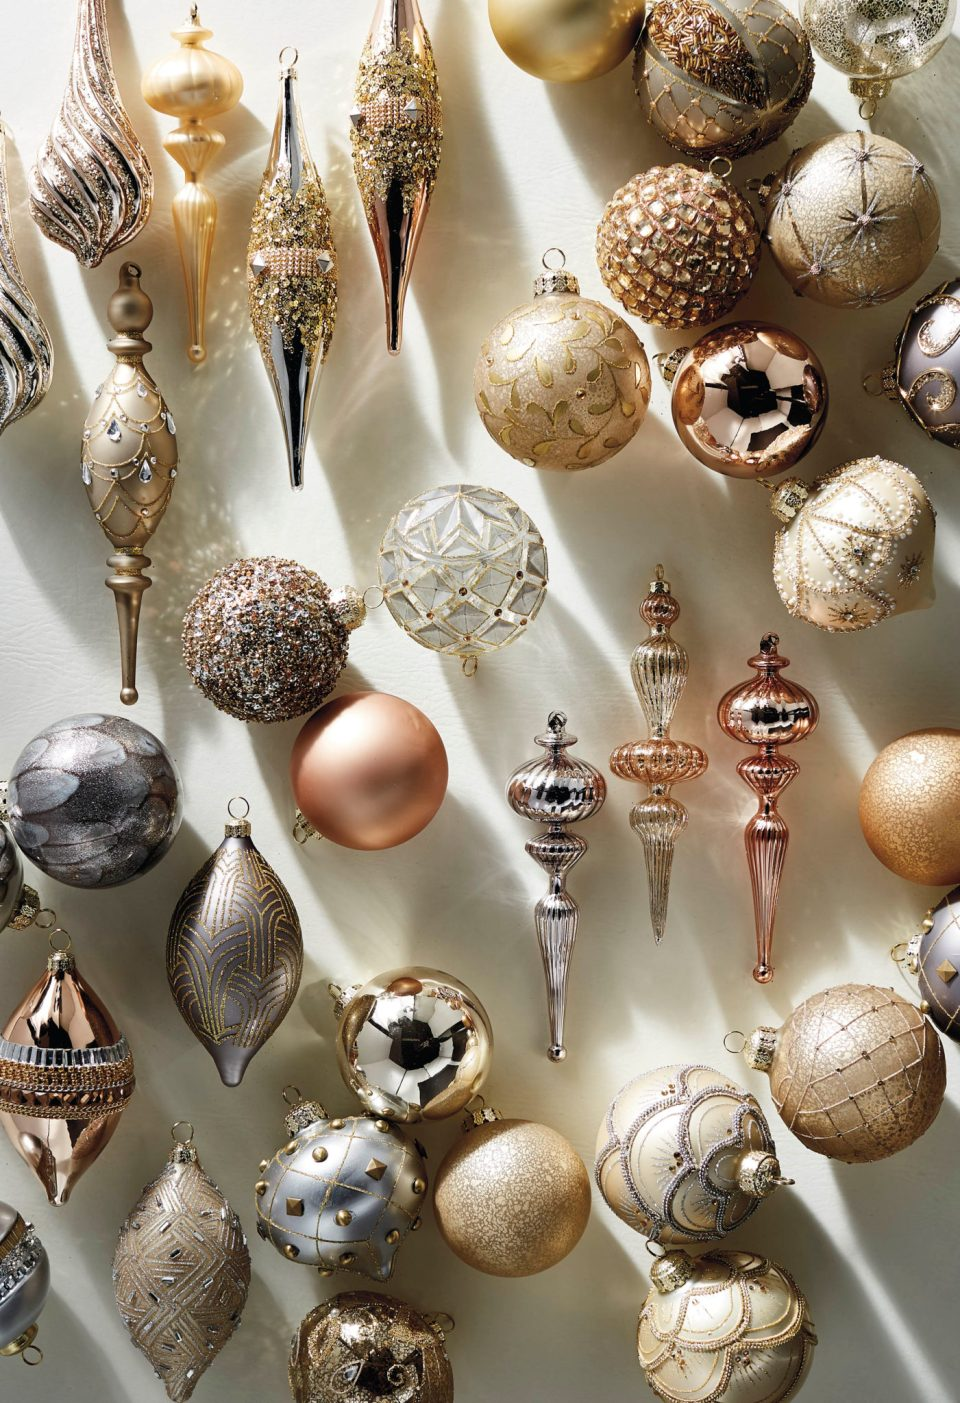 151774_001-960x1403 Holiday Ornaments We Love and How to Store Your Holiday Decor